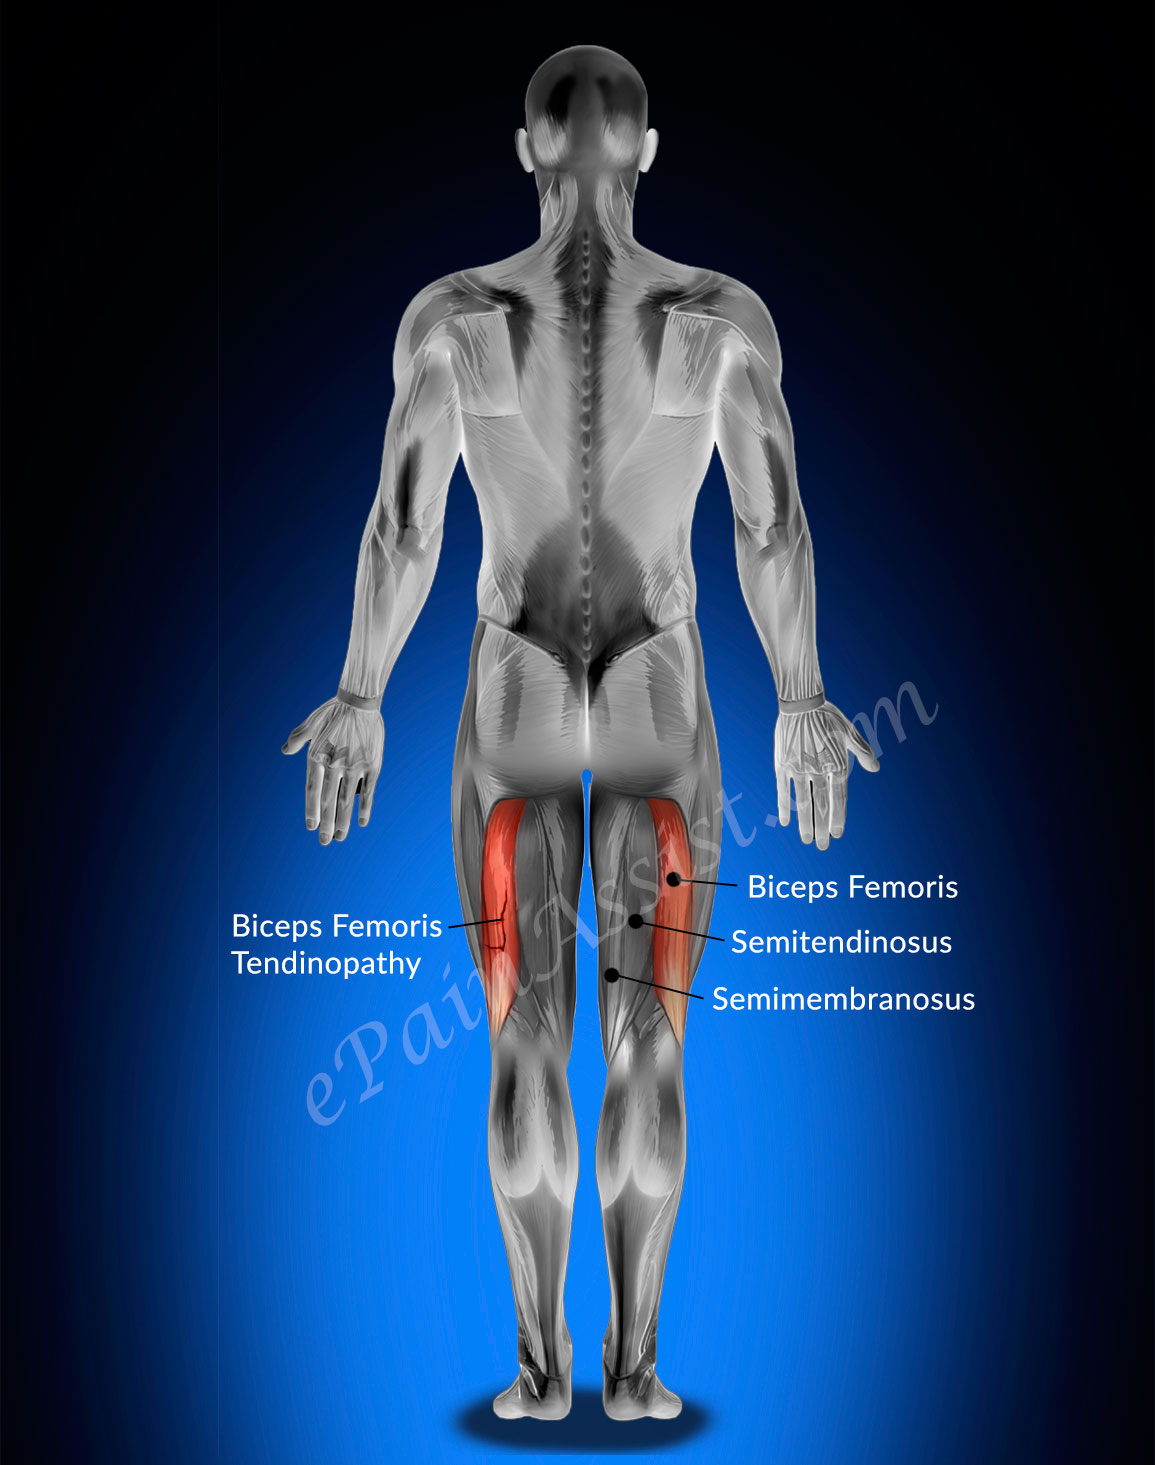 Biceps Femoris Tendinopathy